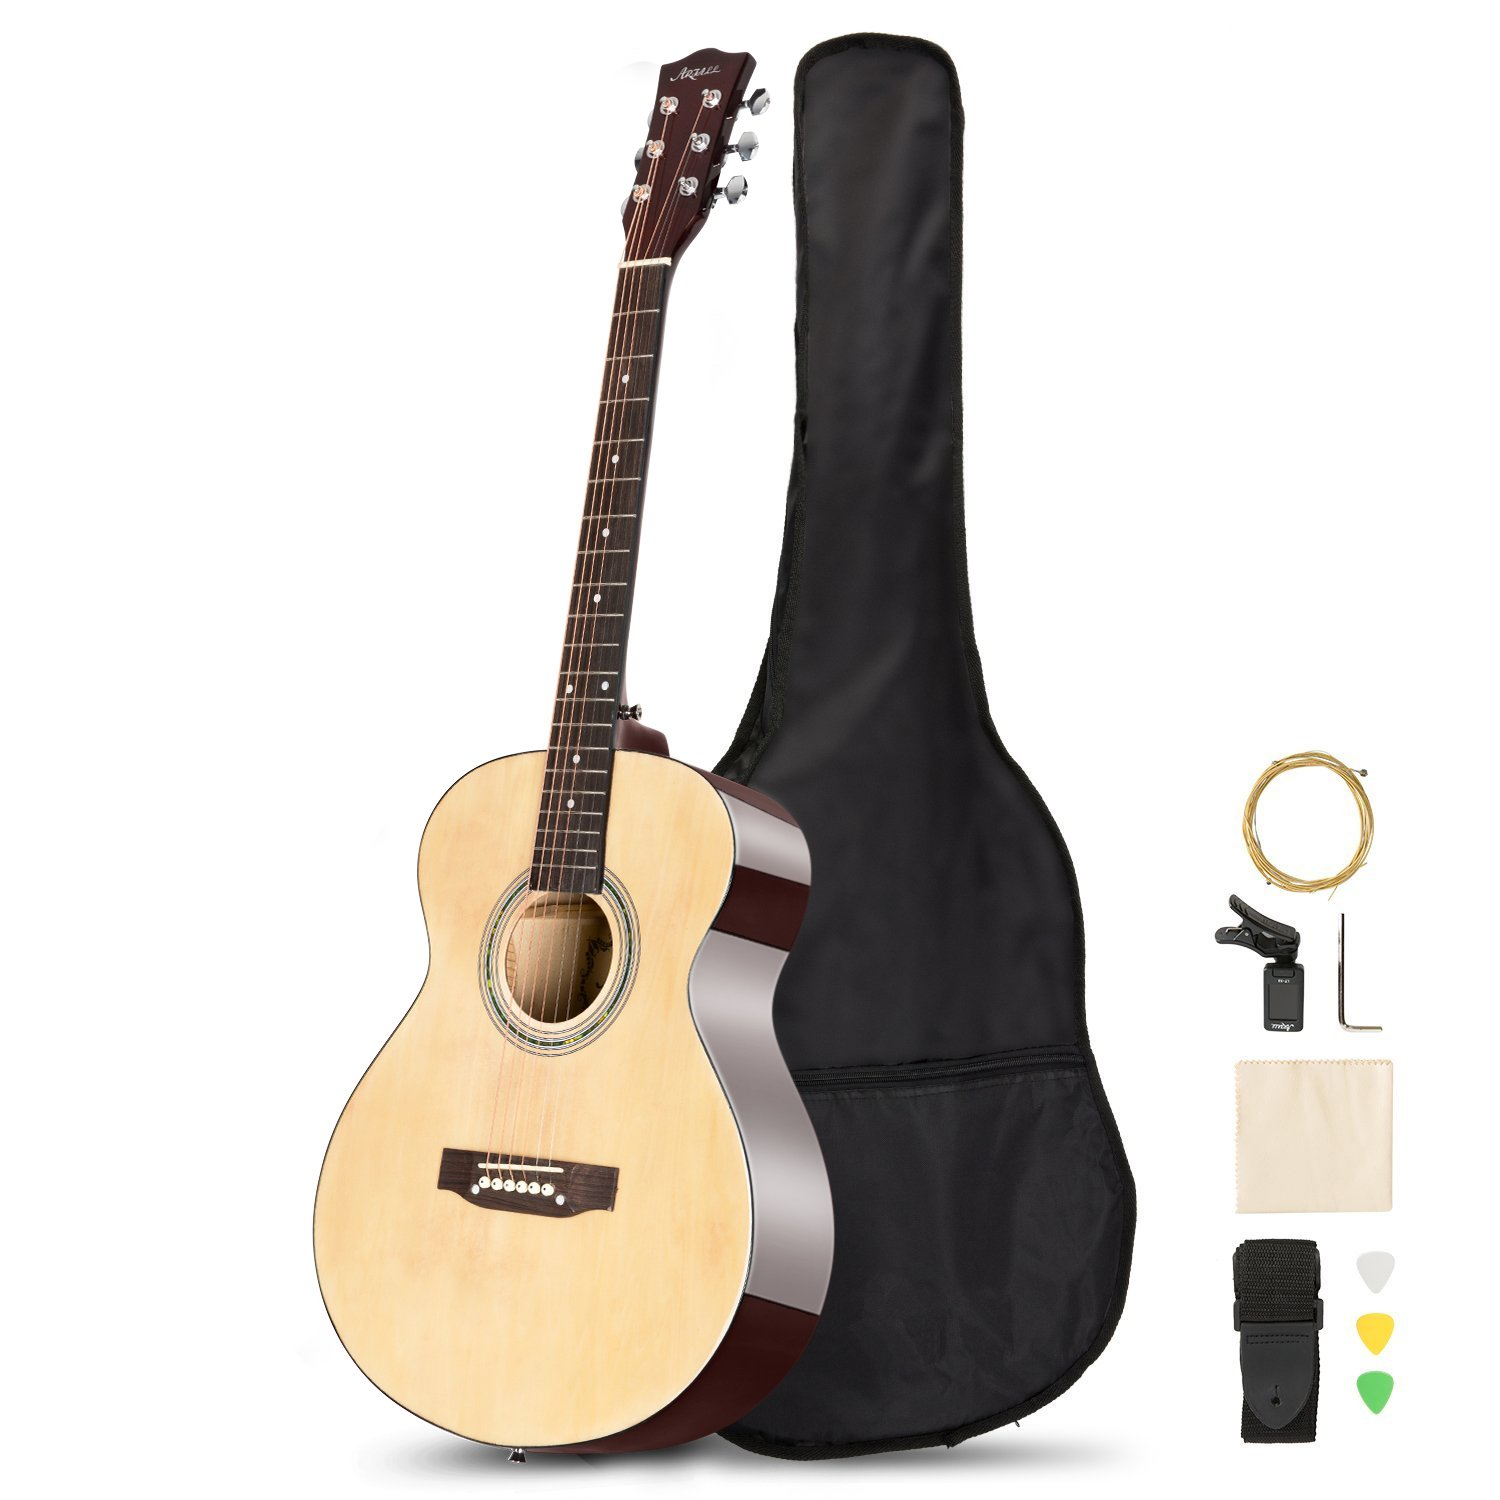 ARTALL 39 Inch Handmade Solid Wood Acoustic Dreadnought Guitar Beginner Kit with Tuner, Strings, Picks, Strap, Glossy Red